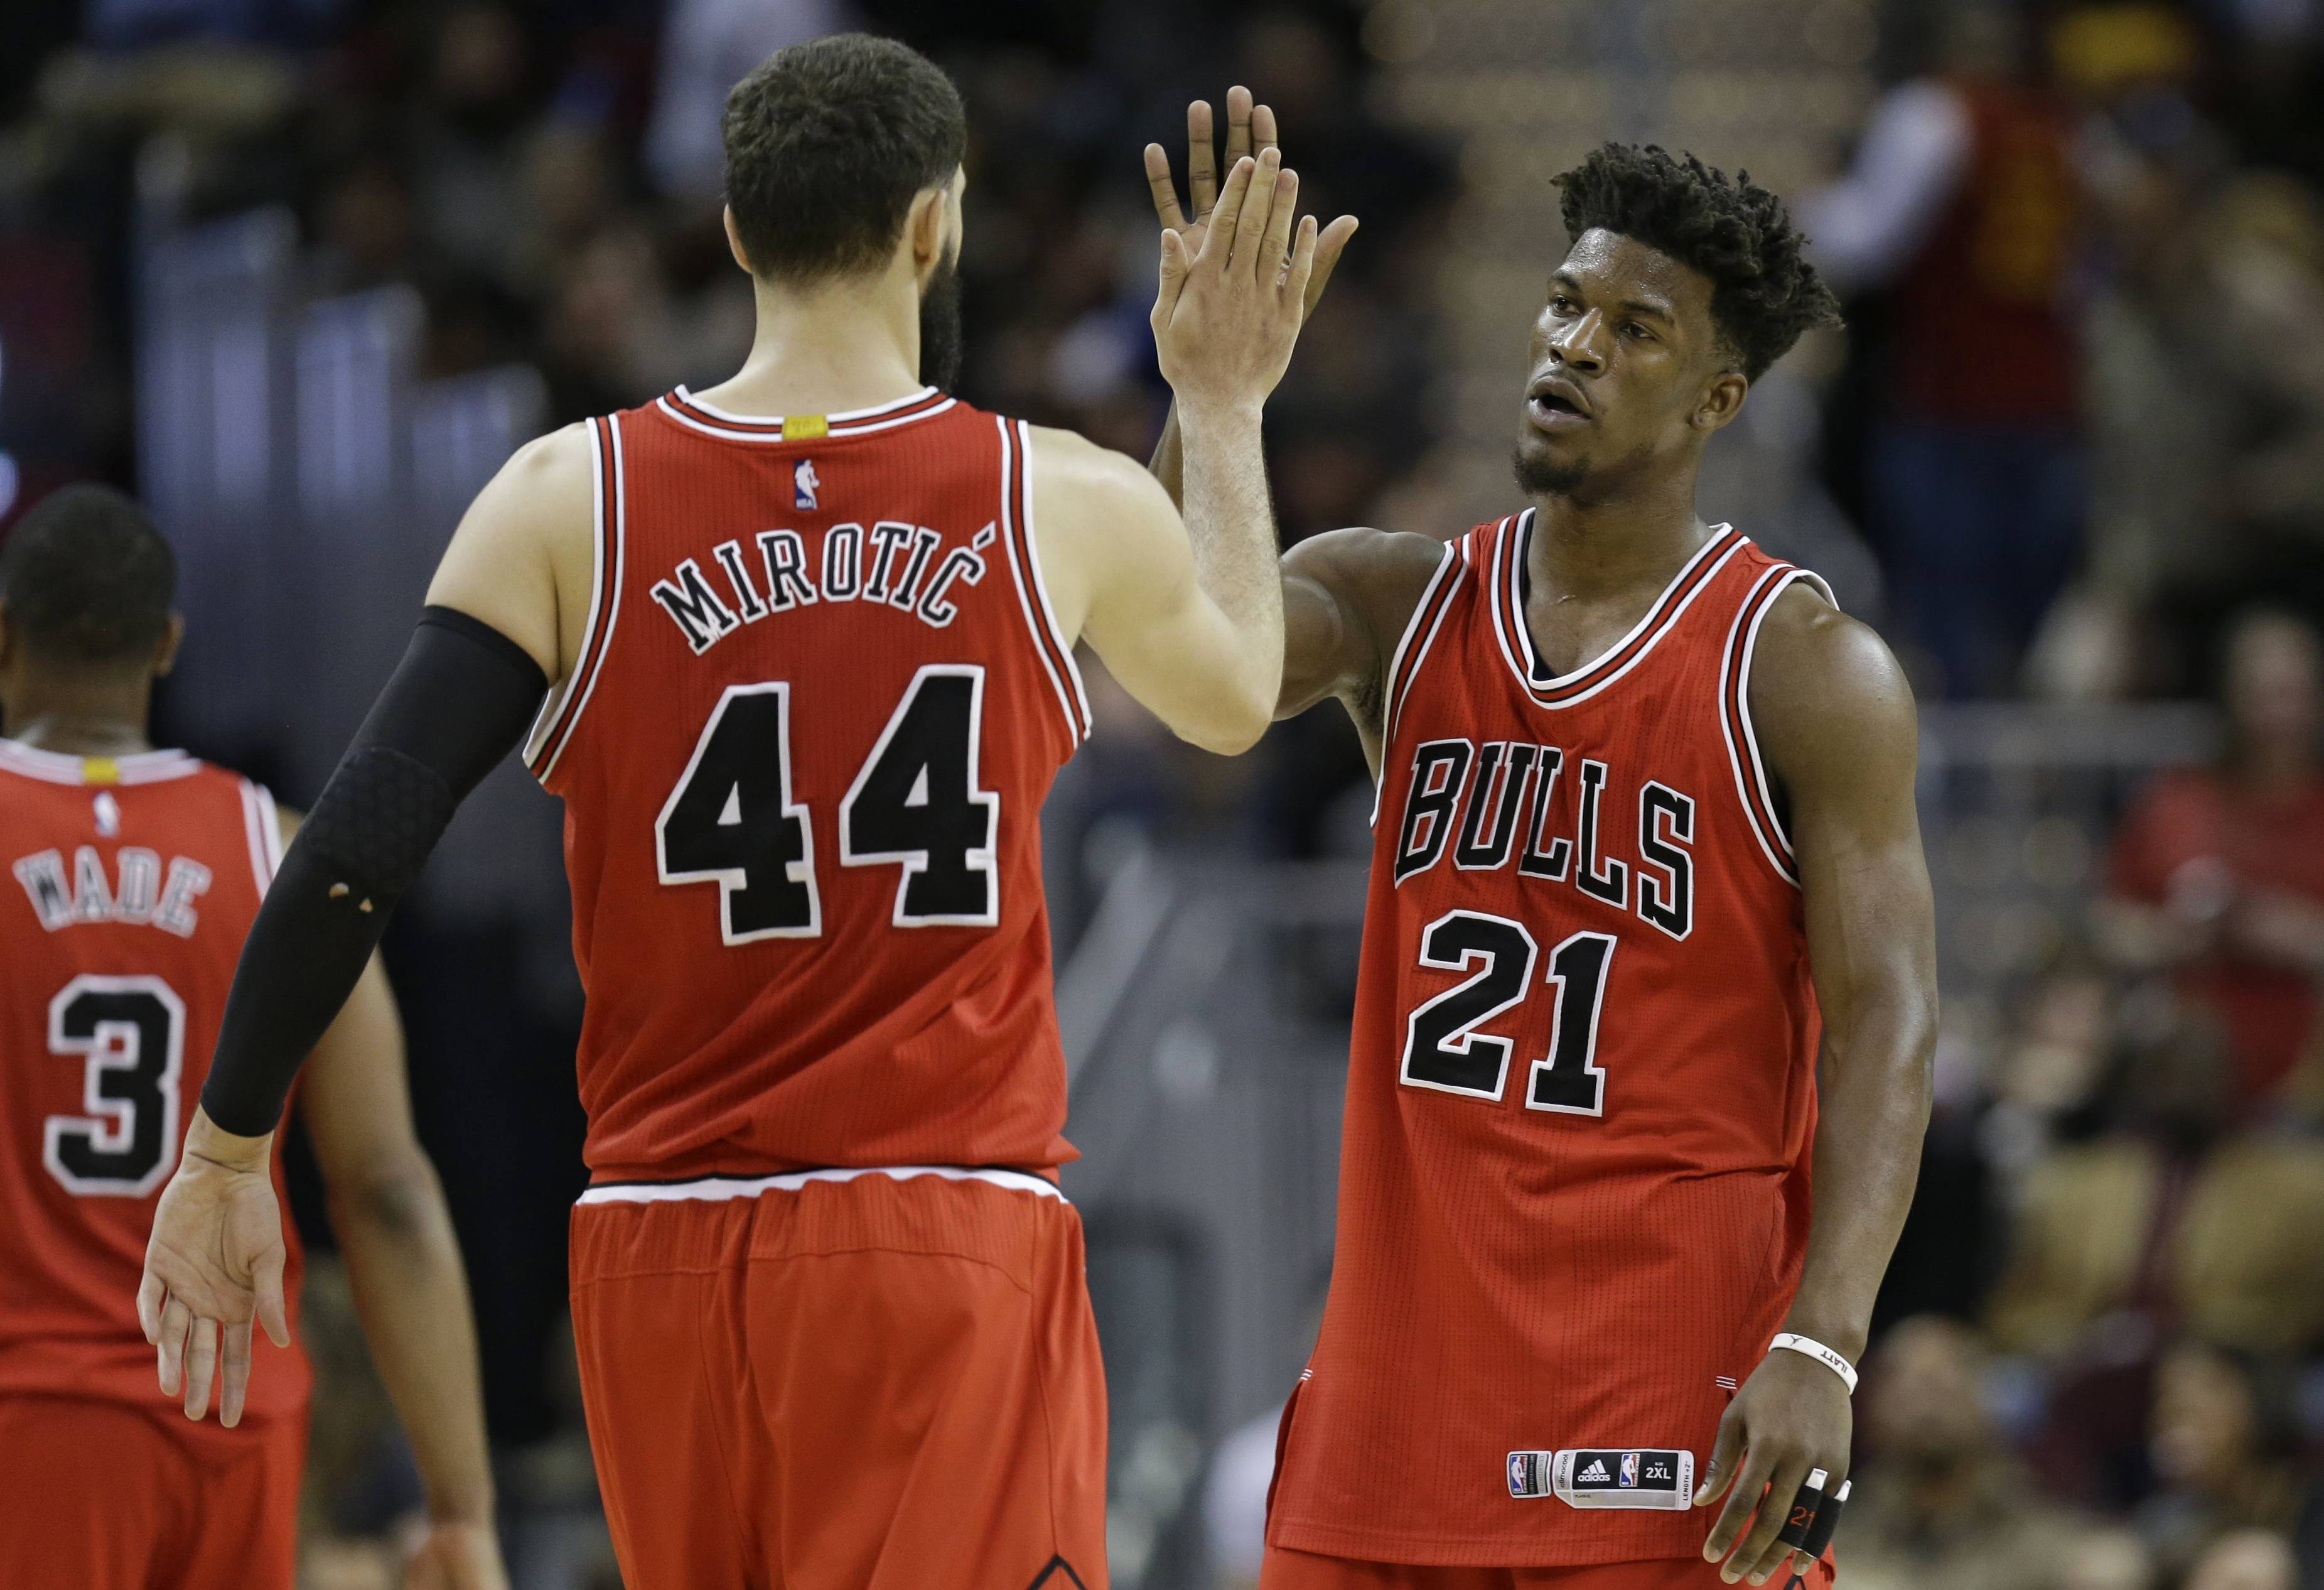 Chicago Bulls' Nikola Mirotic (44) and Jimmy Butler (21) celebrate late in the second half of an NBA basketball game against the Cleveland Cavaliers, Saturday, Feb. 25, 2017, in Cleveland. (AP Photo/Tony Dejak)